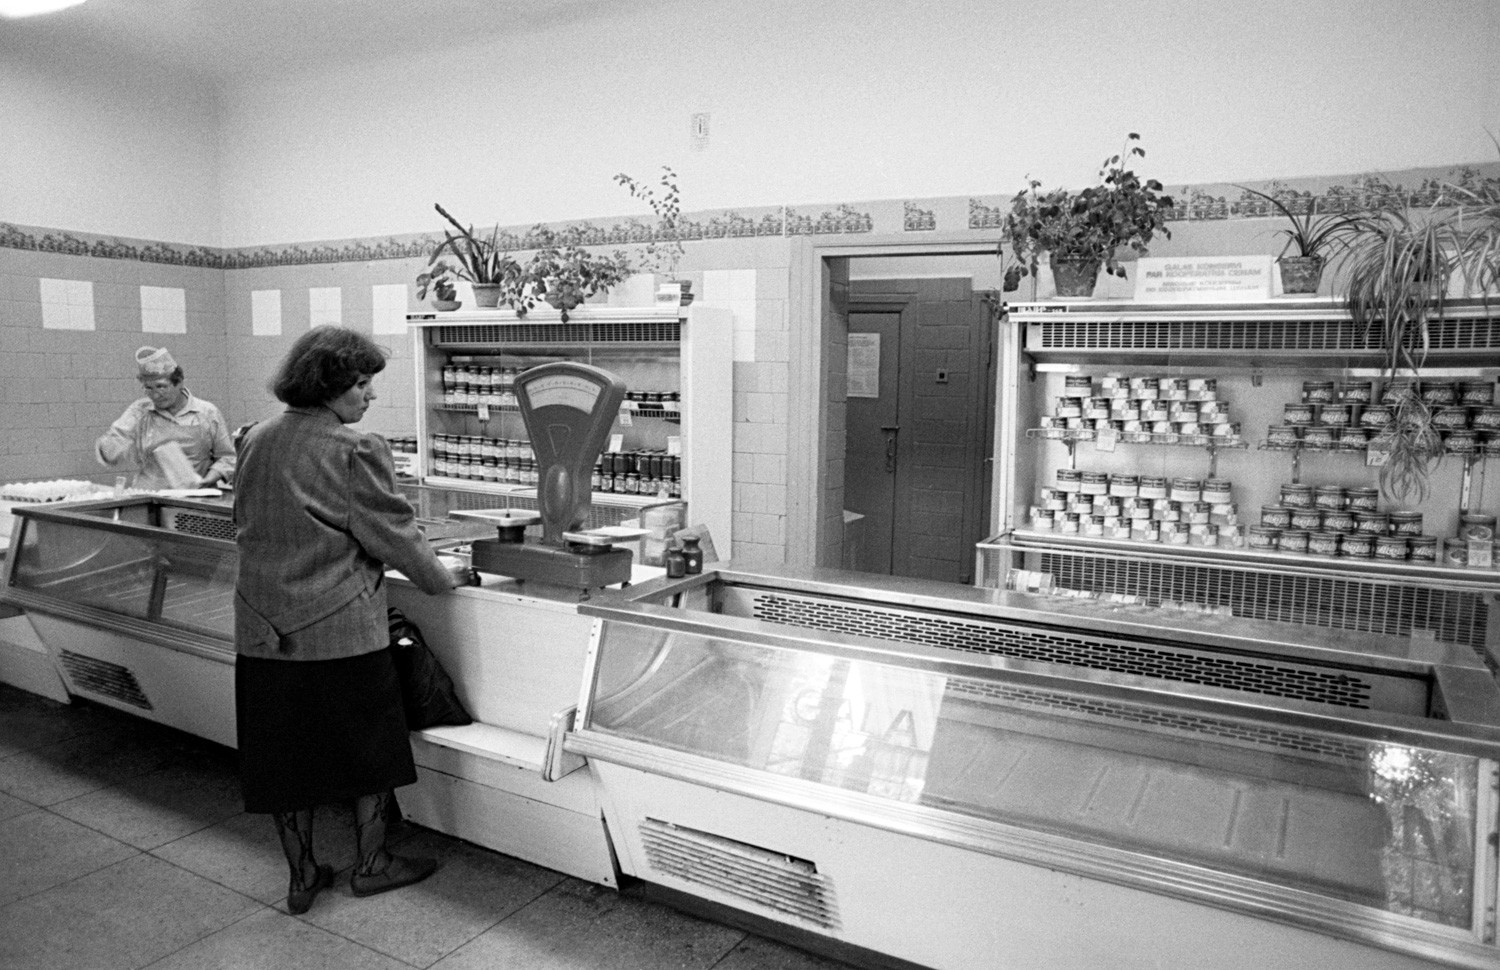 Meat selection in the Soviet Union